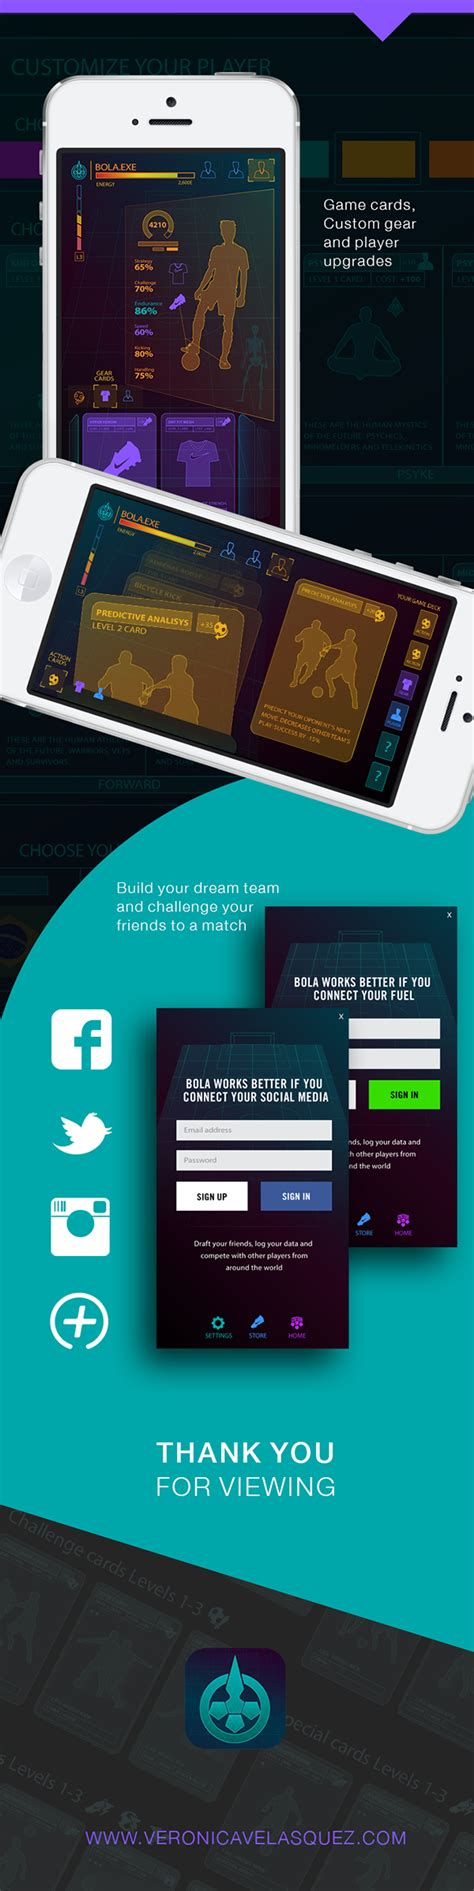 design game for ios ios soccer game interface design on pantone canvas gallery